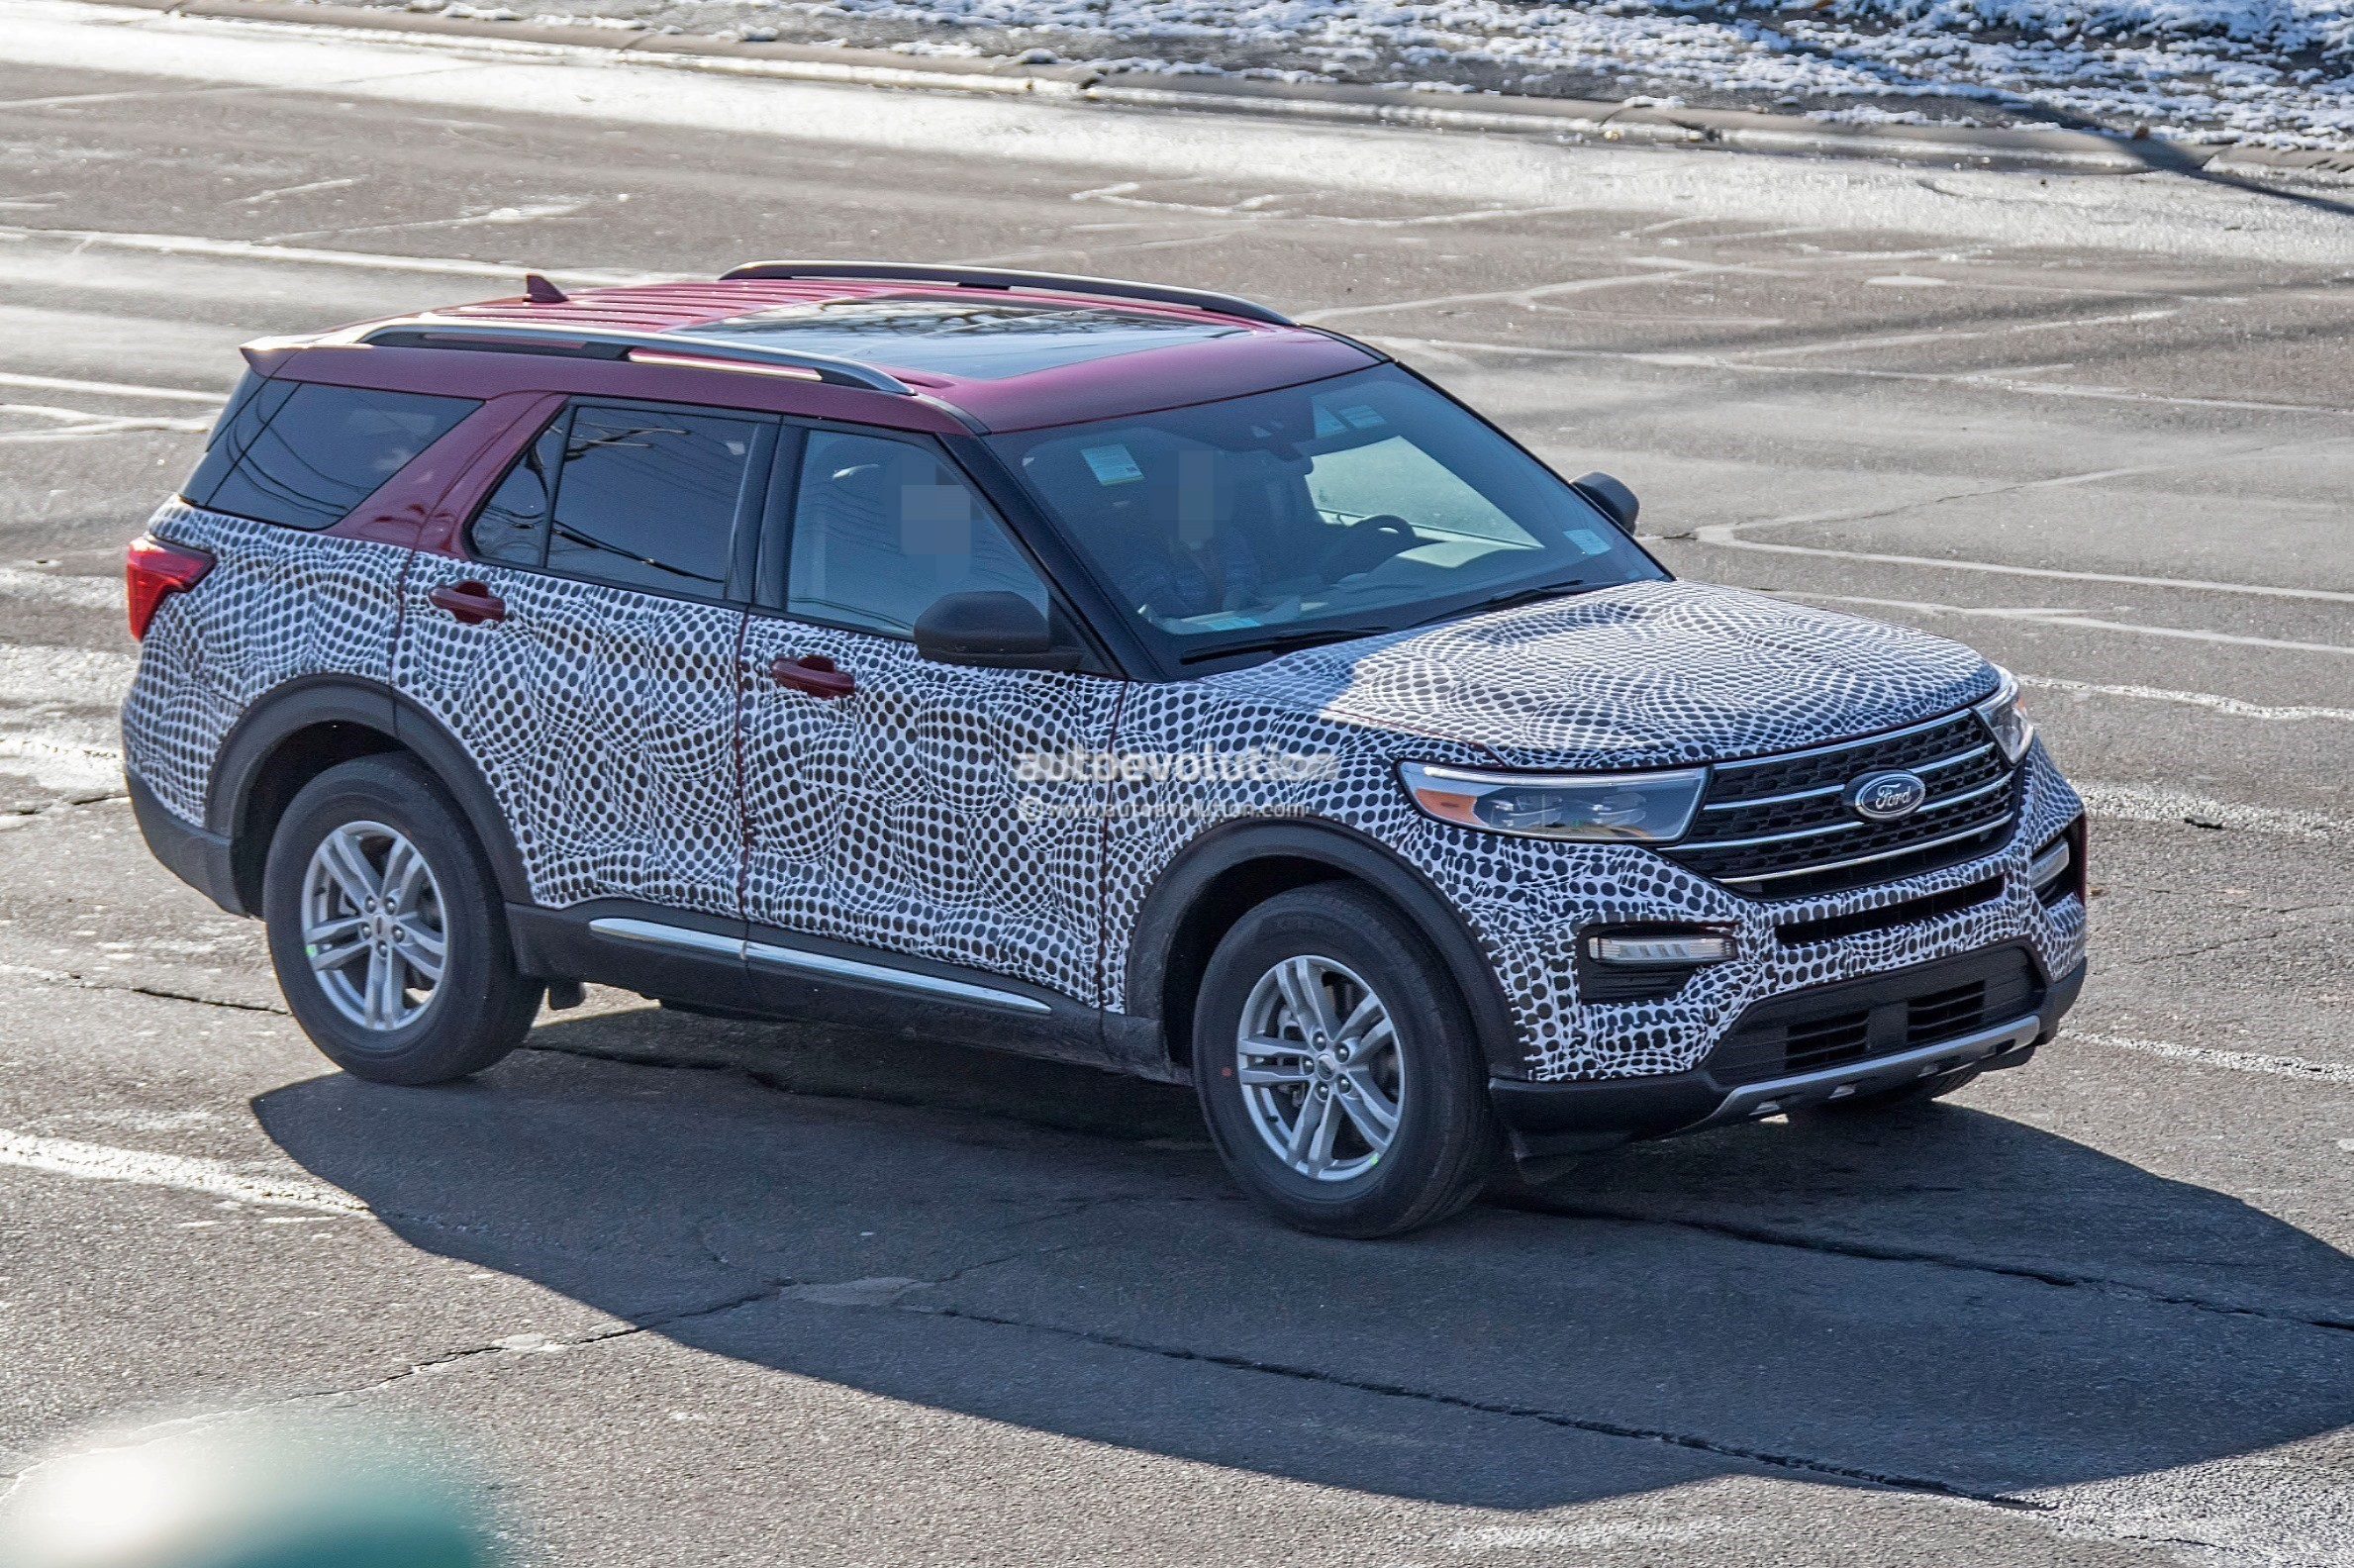 2020 Ford Explorer Looks Plasticky In Most Revealing Spy ...